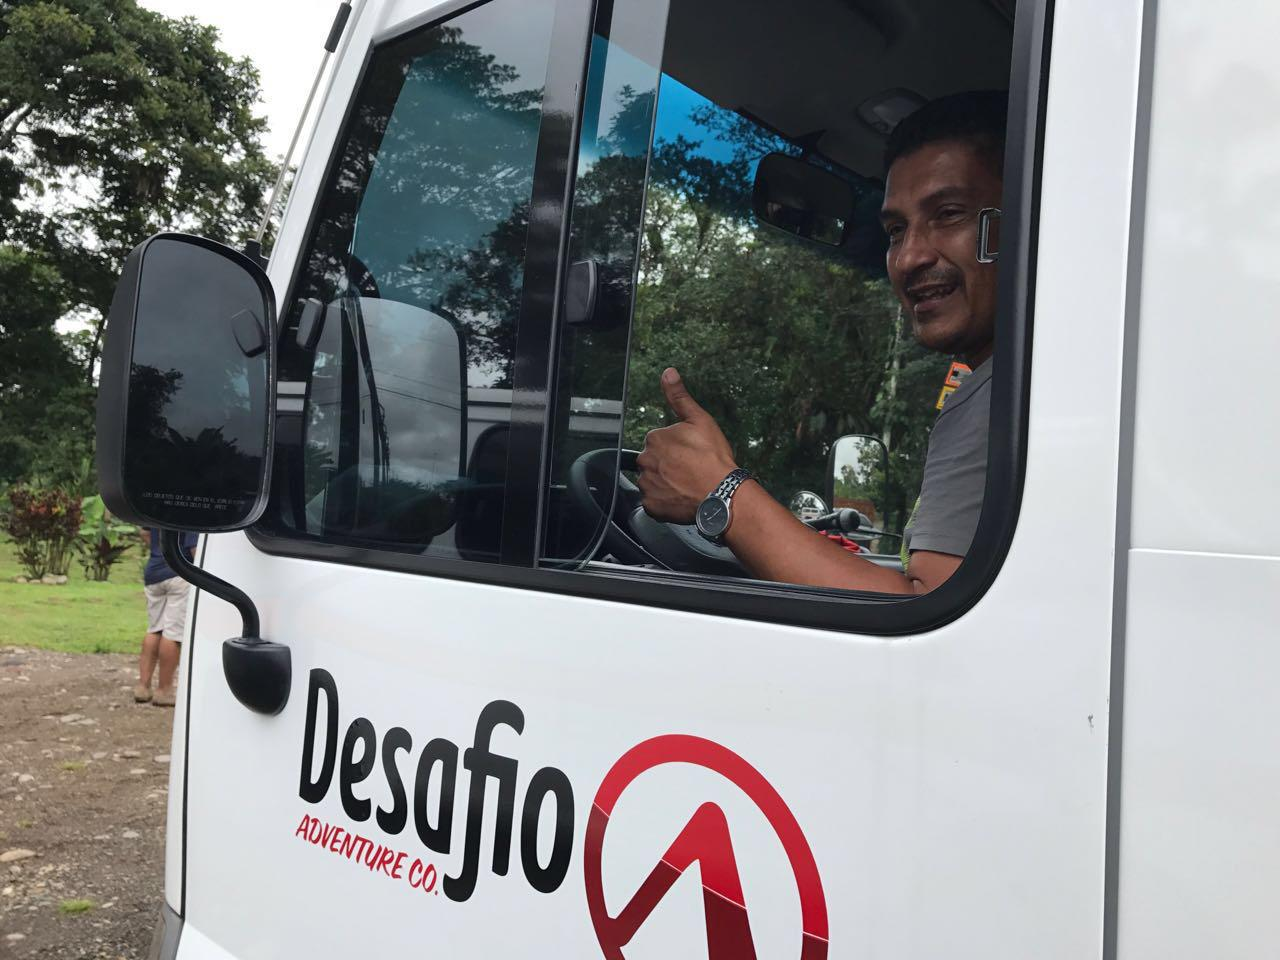 You can always count on Desafio transportation for providing reliable, safe, affordable and comfortable transfer service for anywhere in Costa Rica.